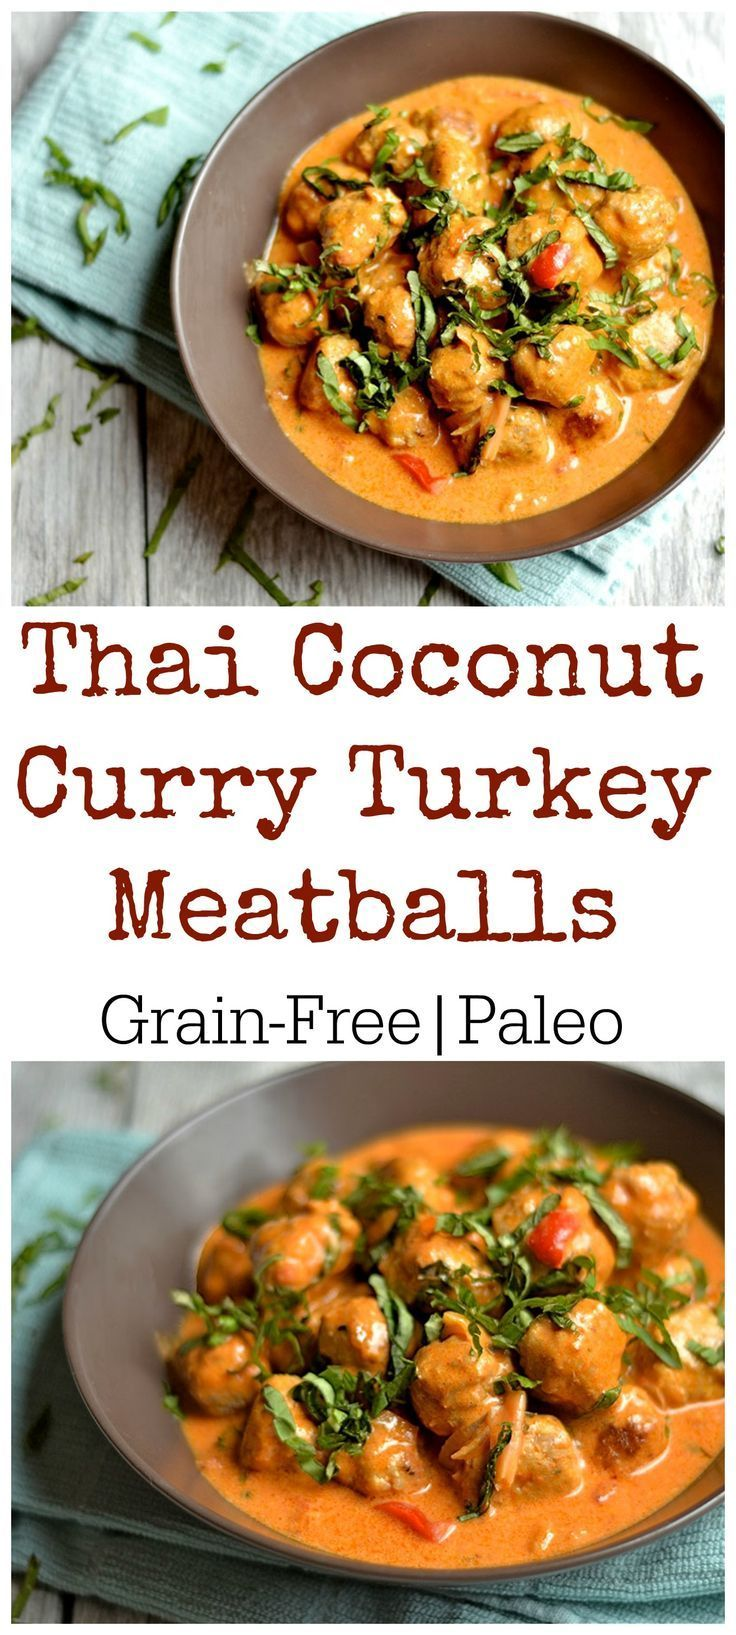 Thai Coconut Curry Turkey Meatballs Simple Grain Free Meatballs in a  deliciously creamy coconut red curry sauce. My family's new favorite dinner!! Paleo & Whole 30 compliant.Simple Grain Free Meatballs in a  deliciously creamy coconut red curry sauce. My family's new favorite dinner!! Paleo & Whole 30 compliant.